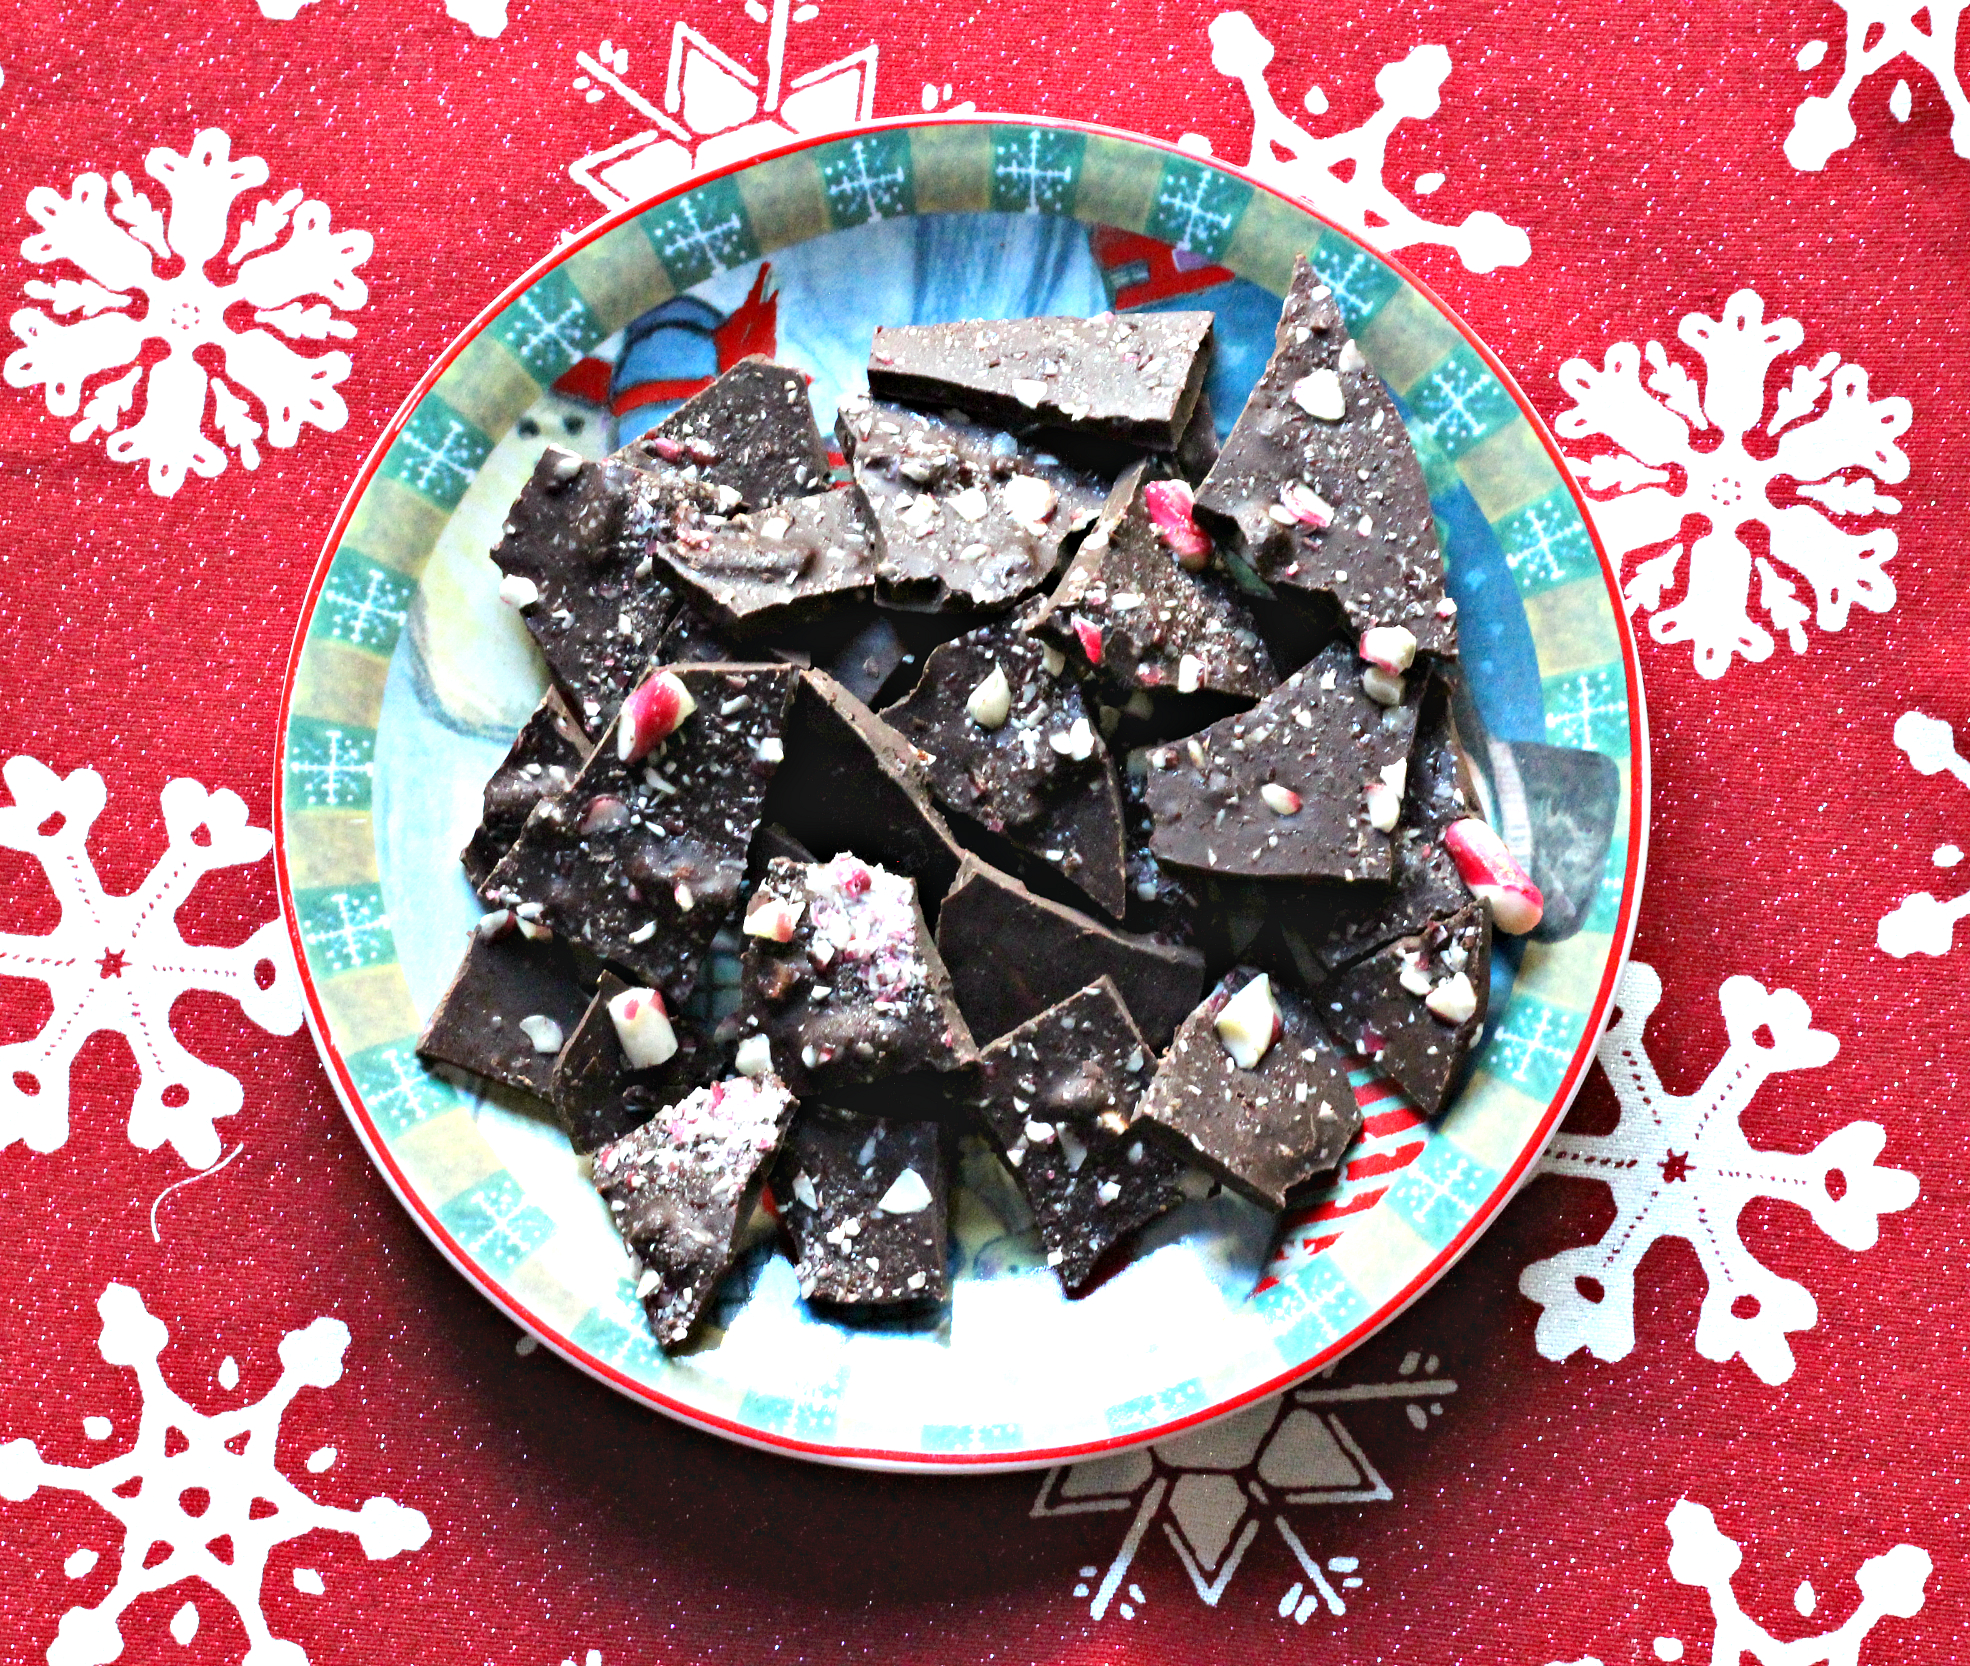 chocpeppermintbark